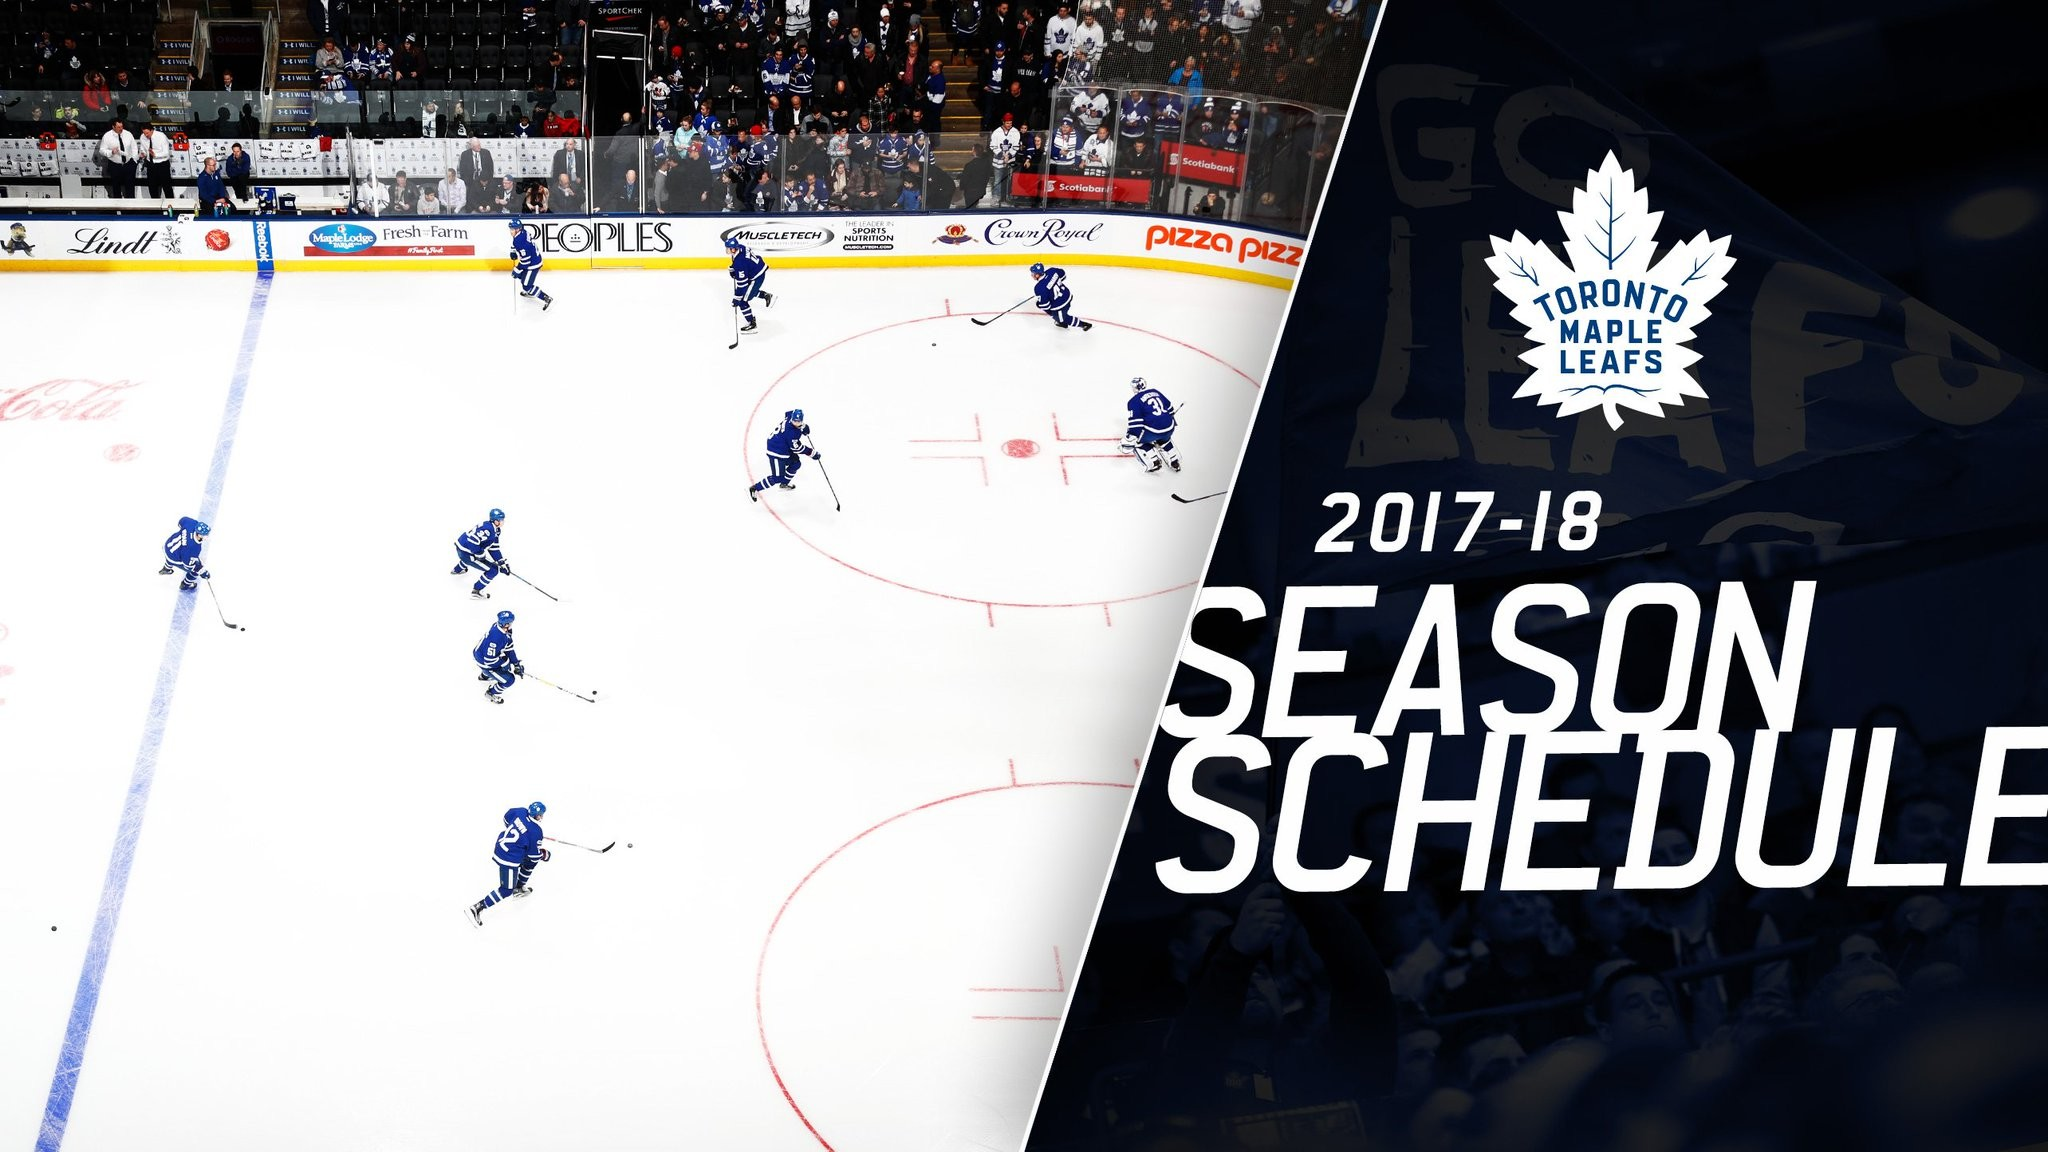 "2048x1152 Toronto Maple Leafs on Twitter: ""Mark your calendar. The 2017-18 @MapleLeafs  schedule is here. SCHEDULE ➡ https://t.co/OddwuQSNh6  https://t.co/RxX9djIw86"""